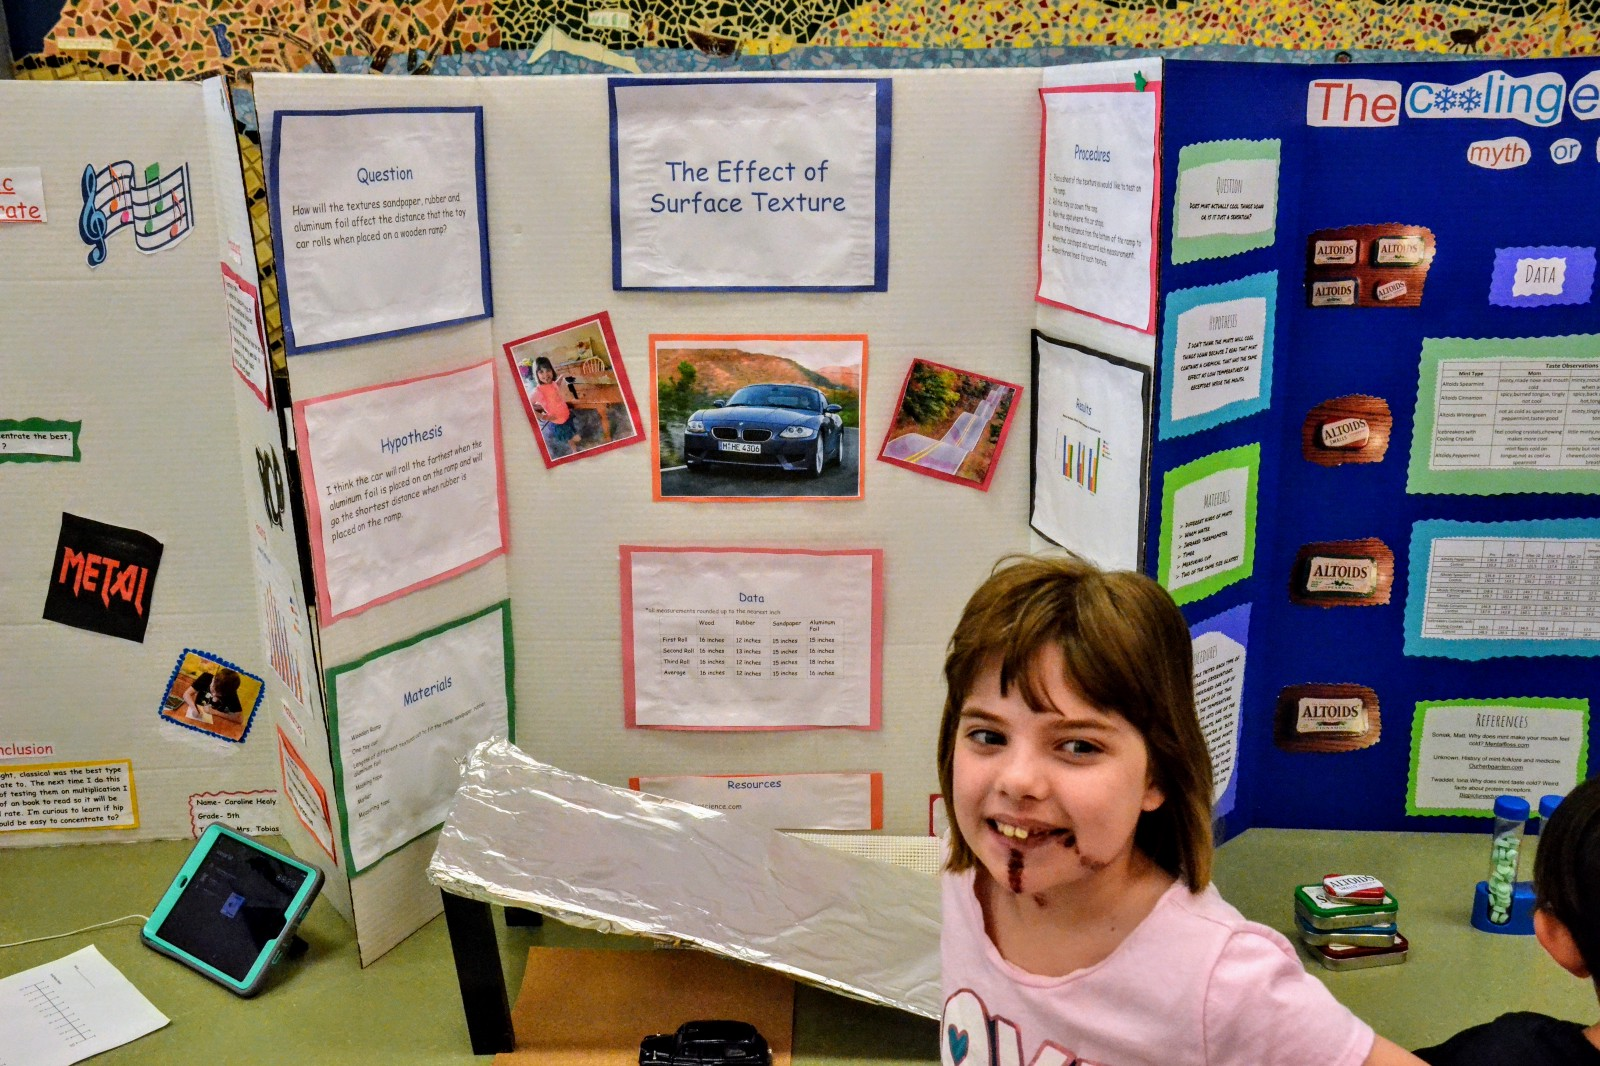 Chairville Holds Fifth Grade Science Fair The Medford Sun